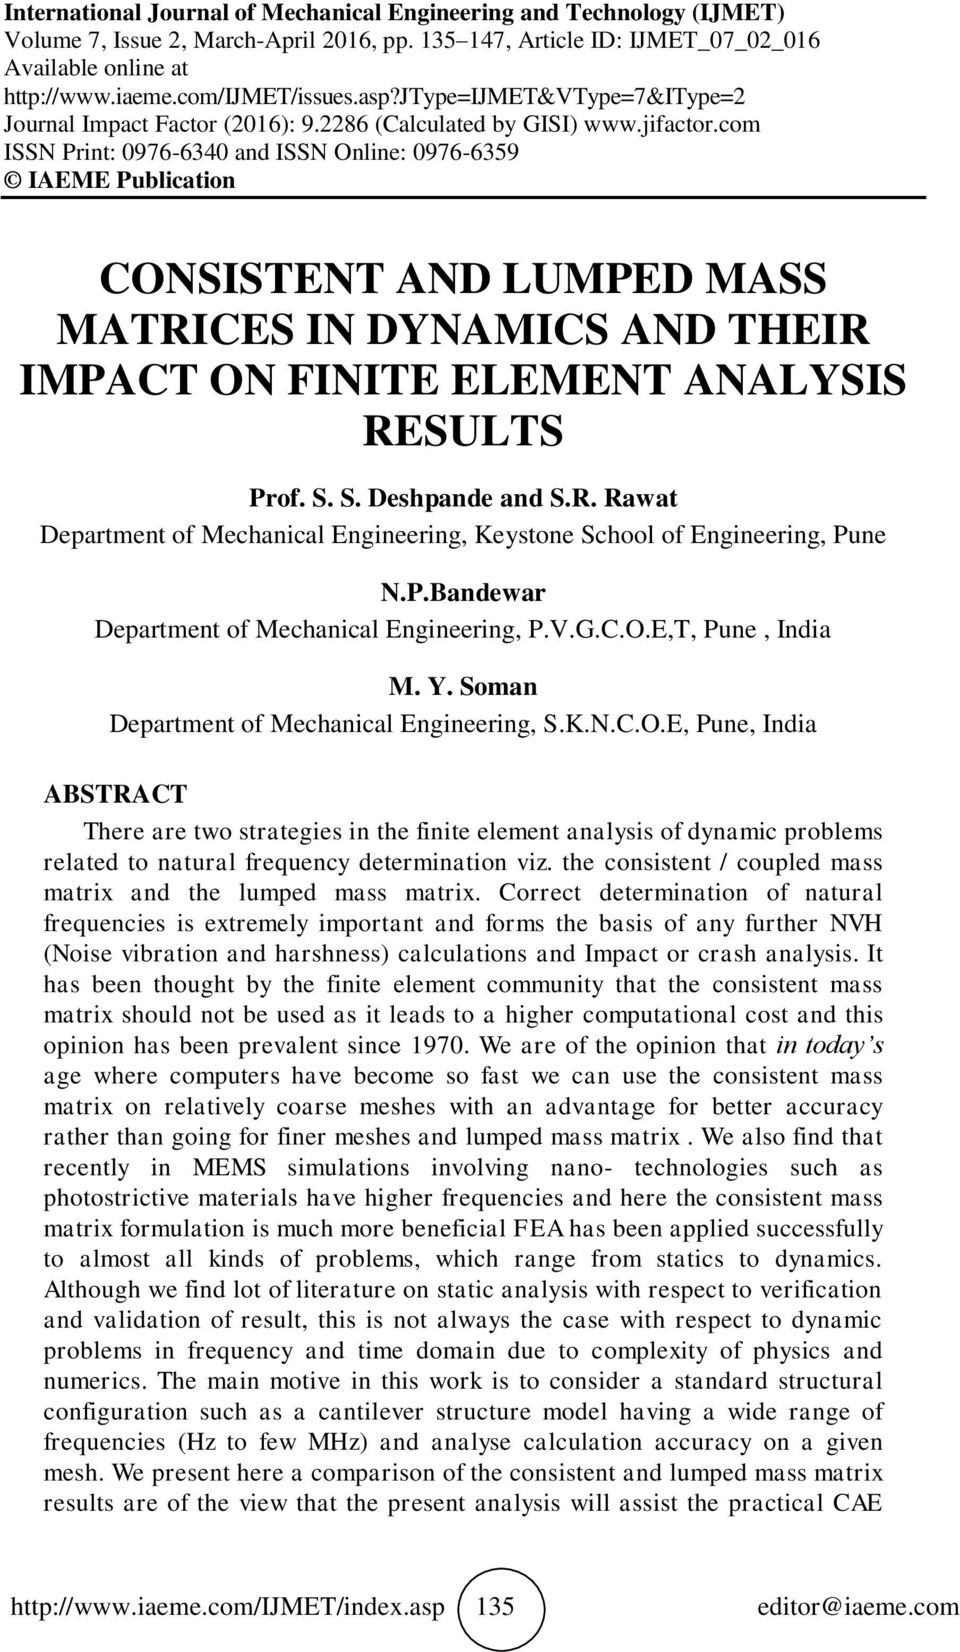 com ISSN Print: 0976-6340 and ISSN Online: 0976-6359 IAEME Publication CONSISTENT AND LUMPED MASS MATRICES IN DYNAMICS AND THEIR IMPACT ON FINITE ELEMENT ANALYSIS RESULTS Prof. S. S. Deshpande and S.